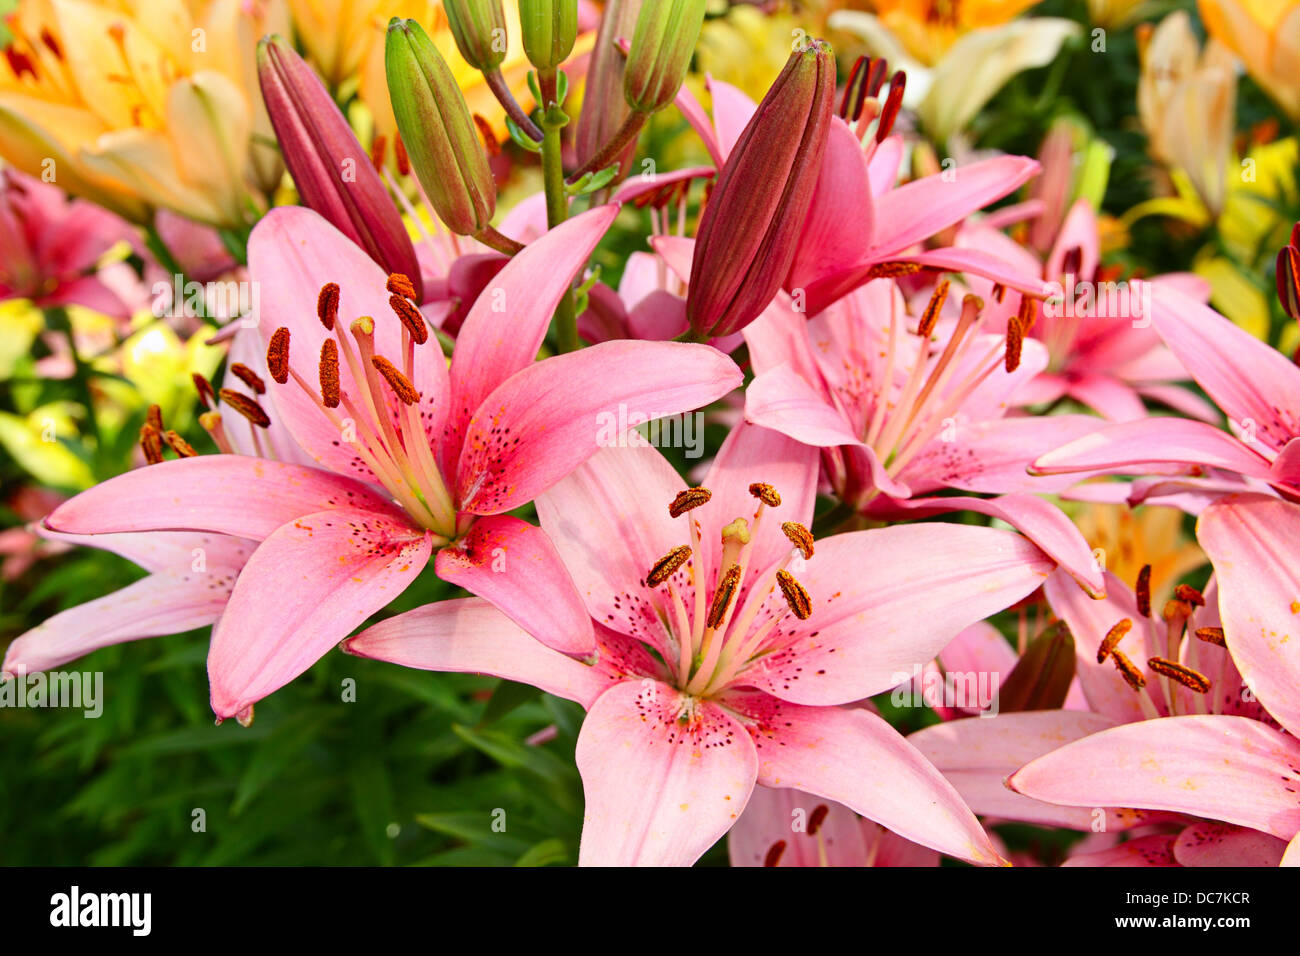 Rainbow lilies stock photos rainbow lilies stock images alamy luxury flowers of lilies on a flowerbed stock image izmirmasajfo